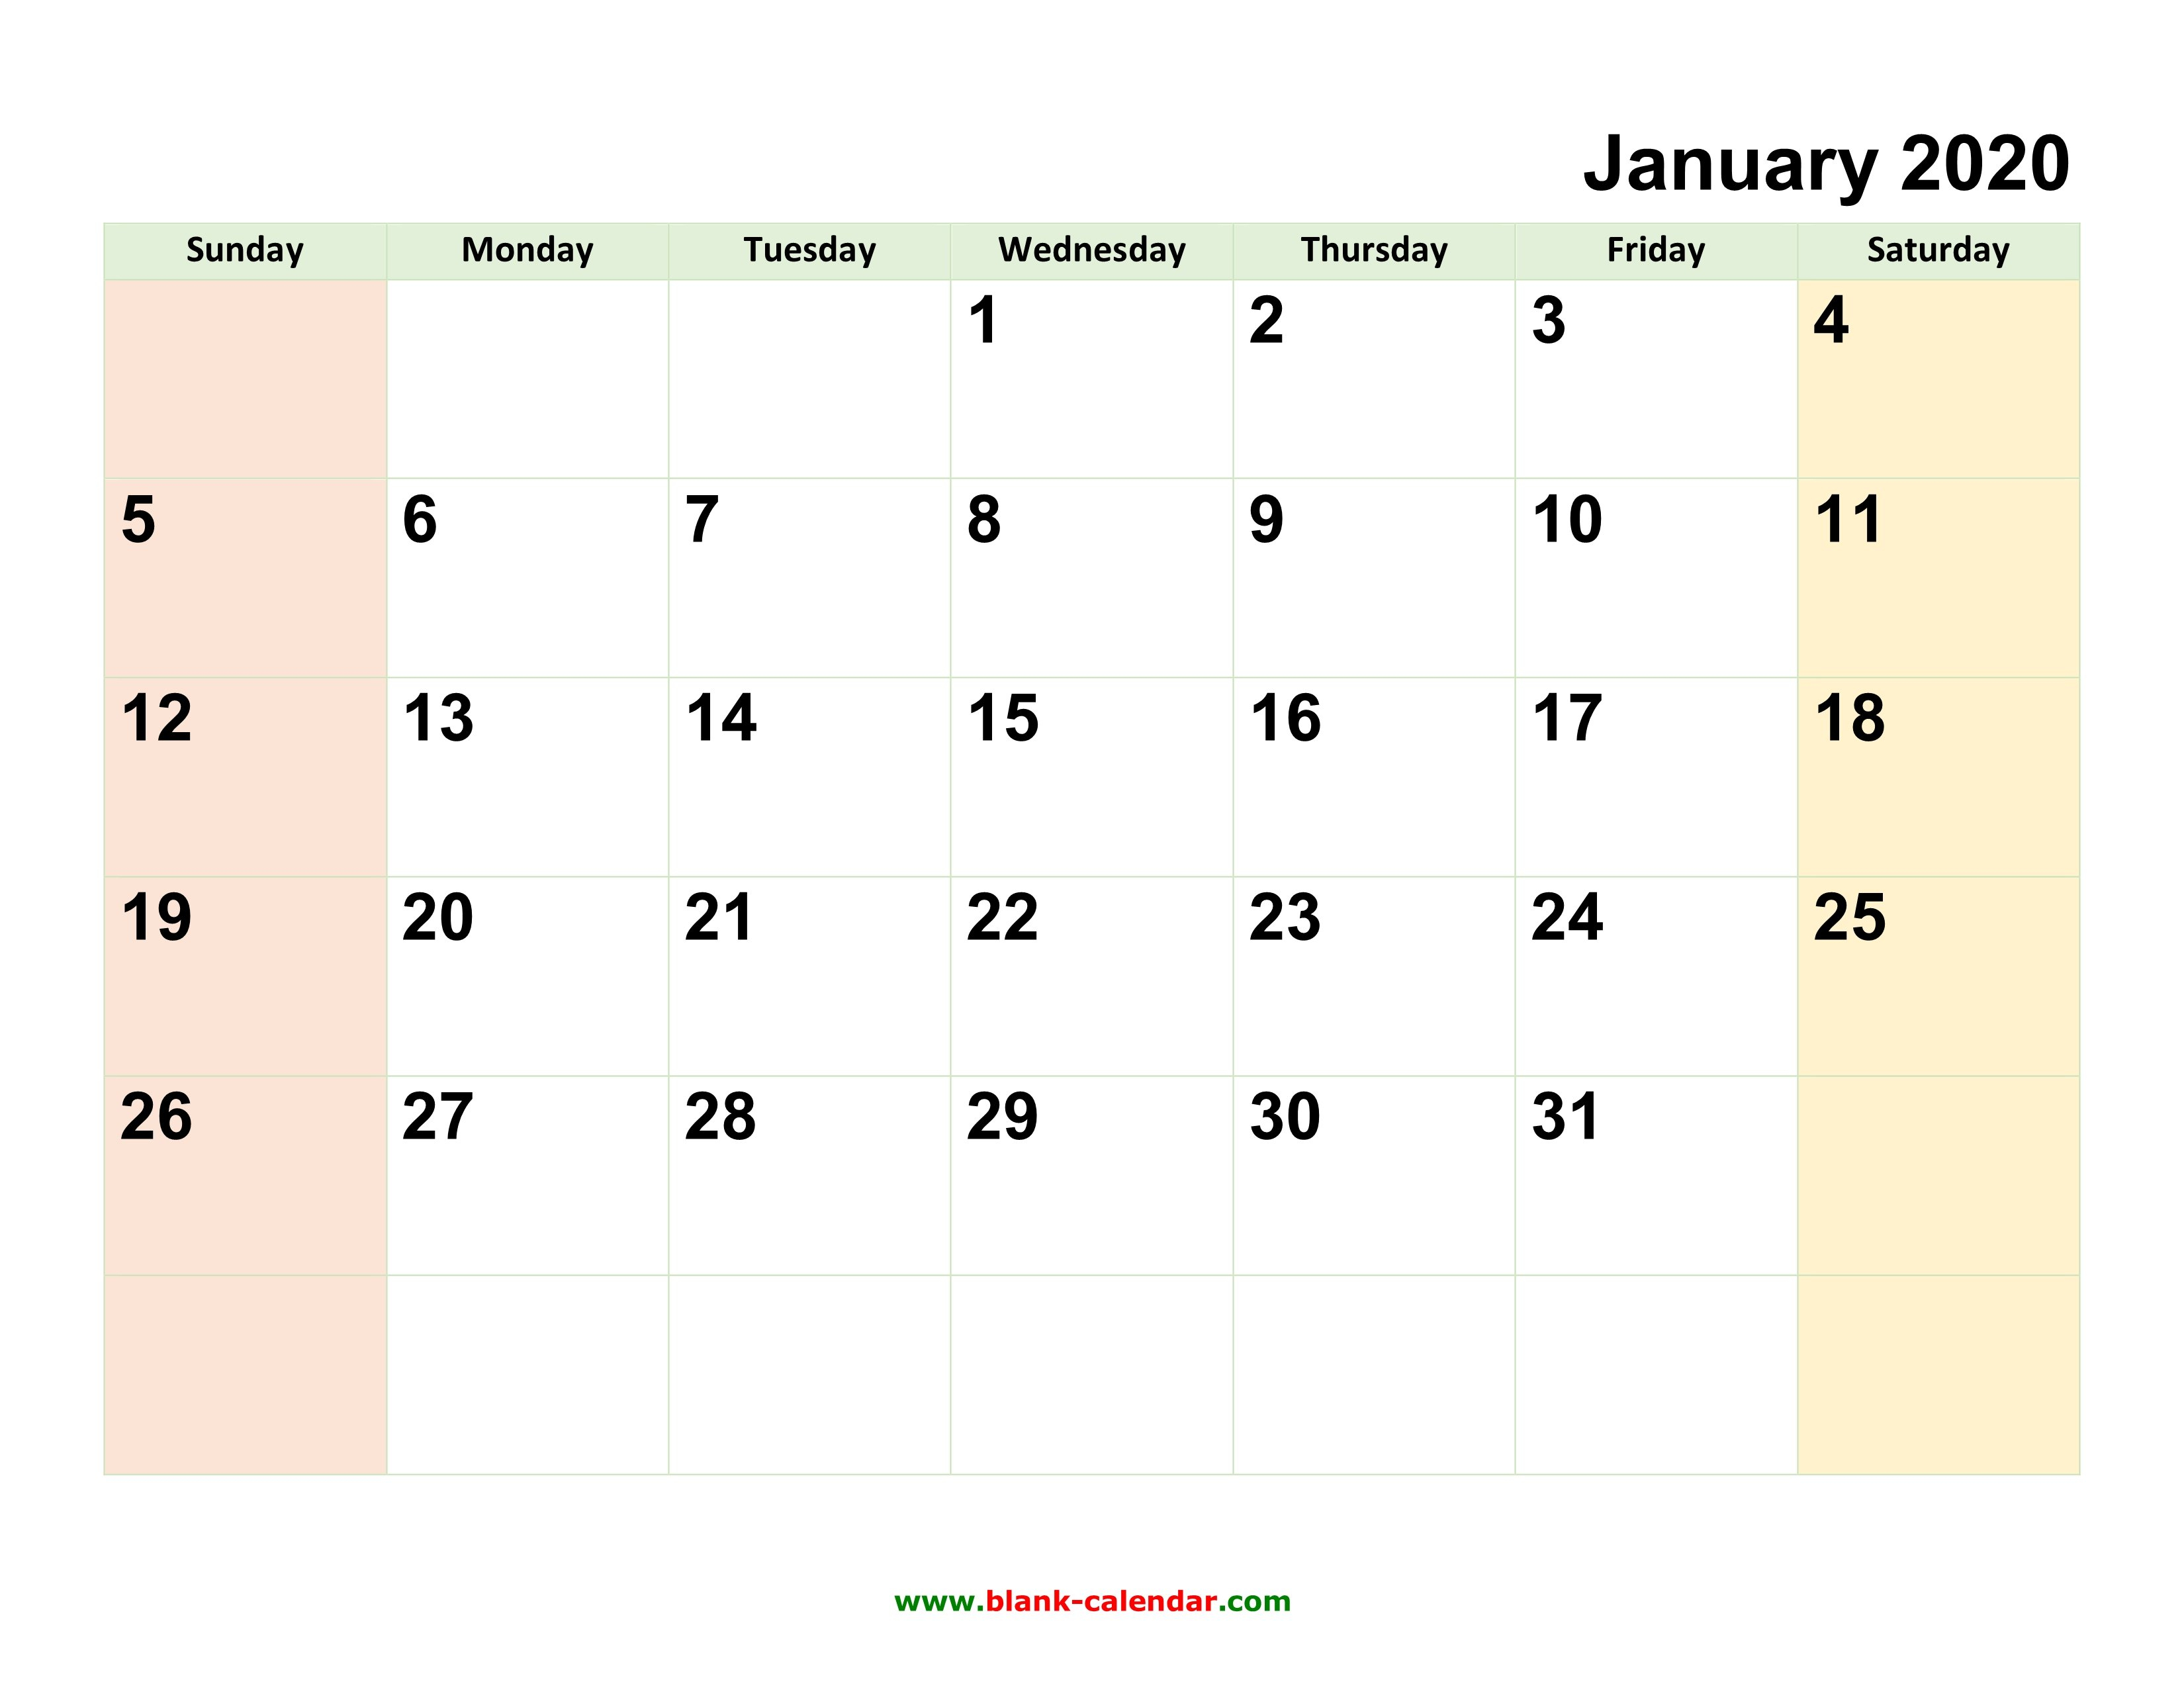 Monthly Calendar 2020 | Free Download, Editable And Printable Calendar That Can Be Edited